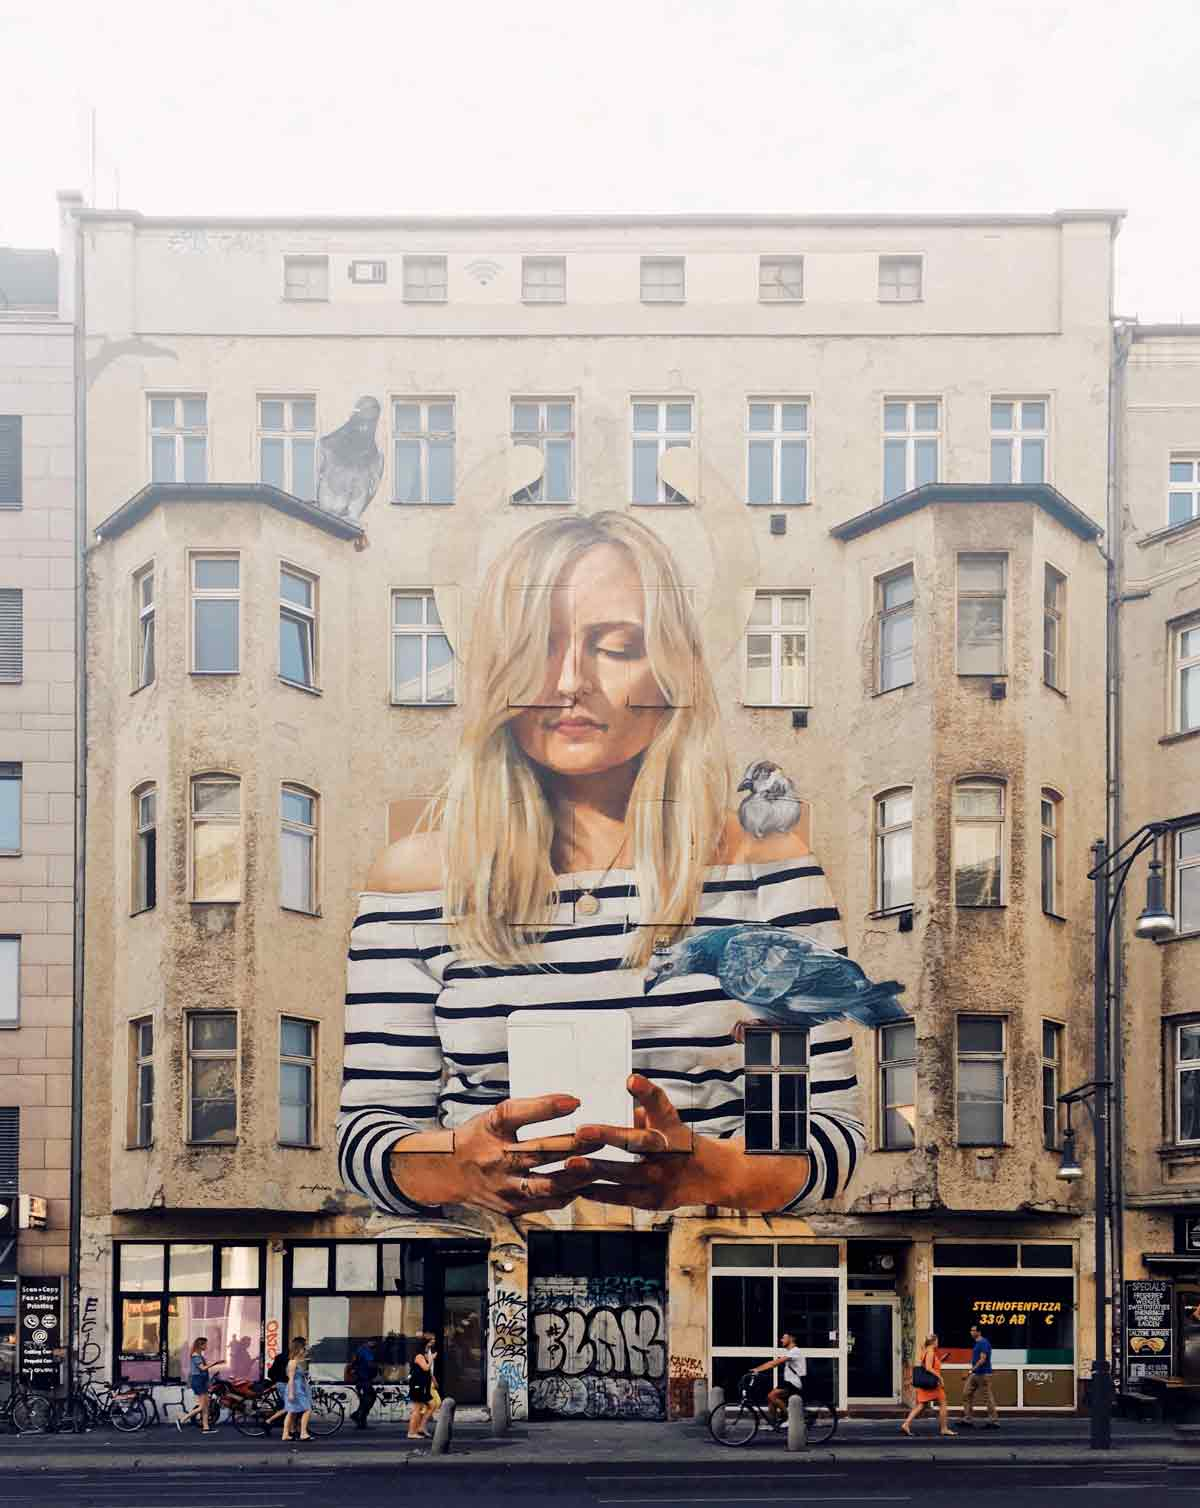 Grafitti at Schönhauser Allee 187. Photo: Pavel Nekoranec via Unsplash.